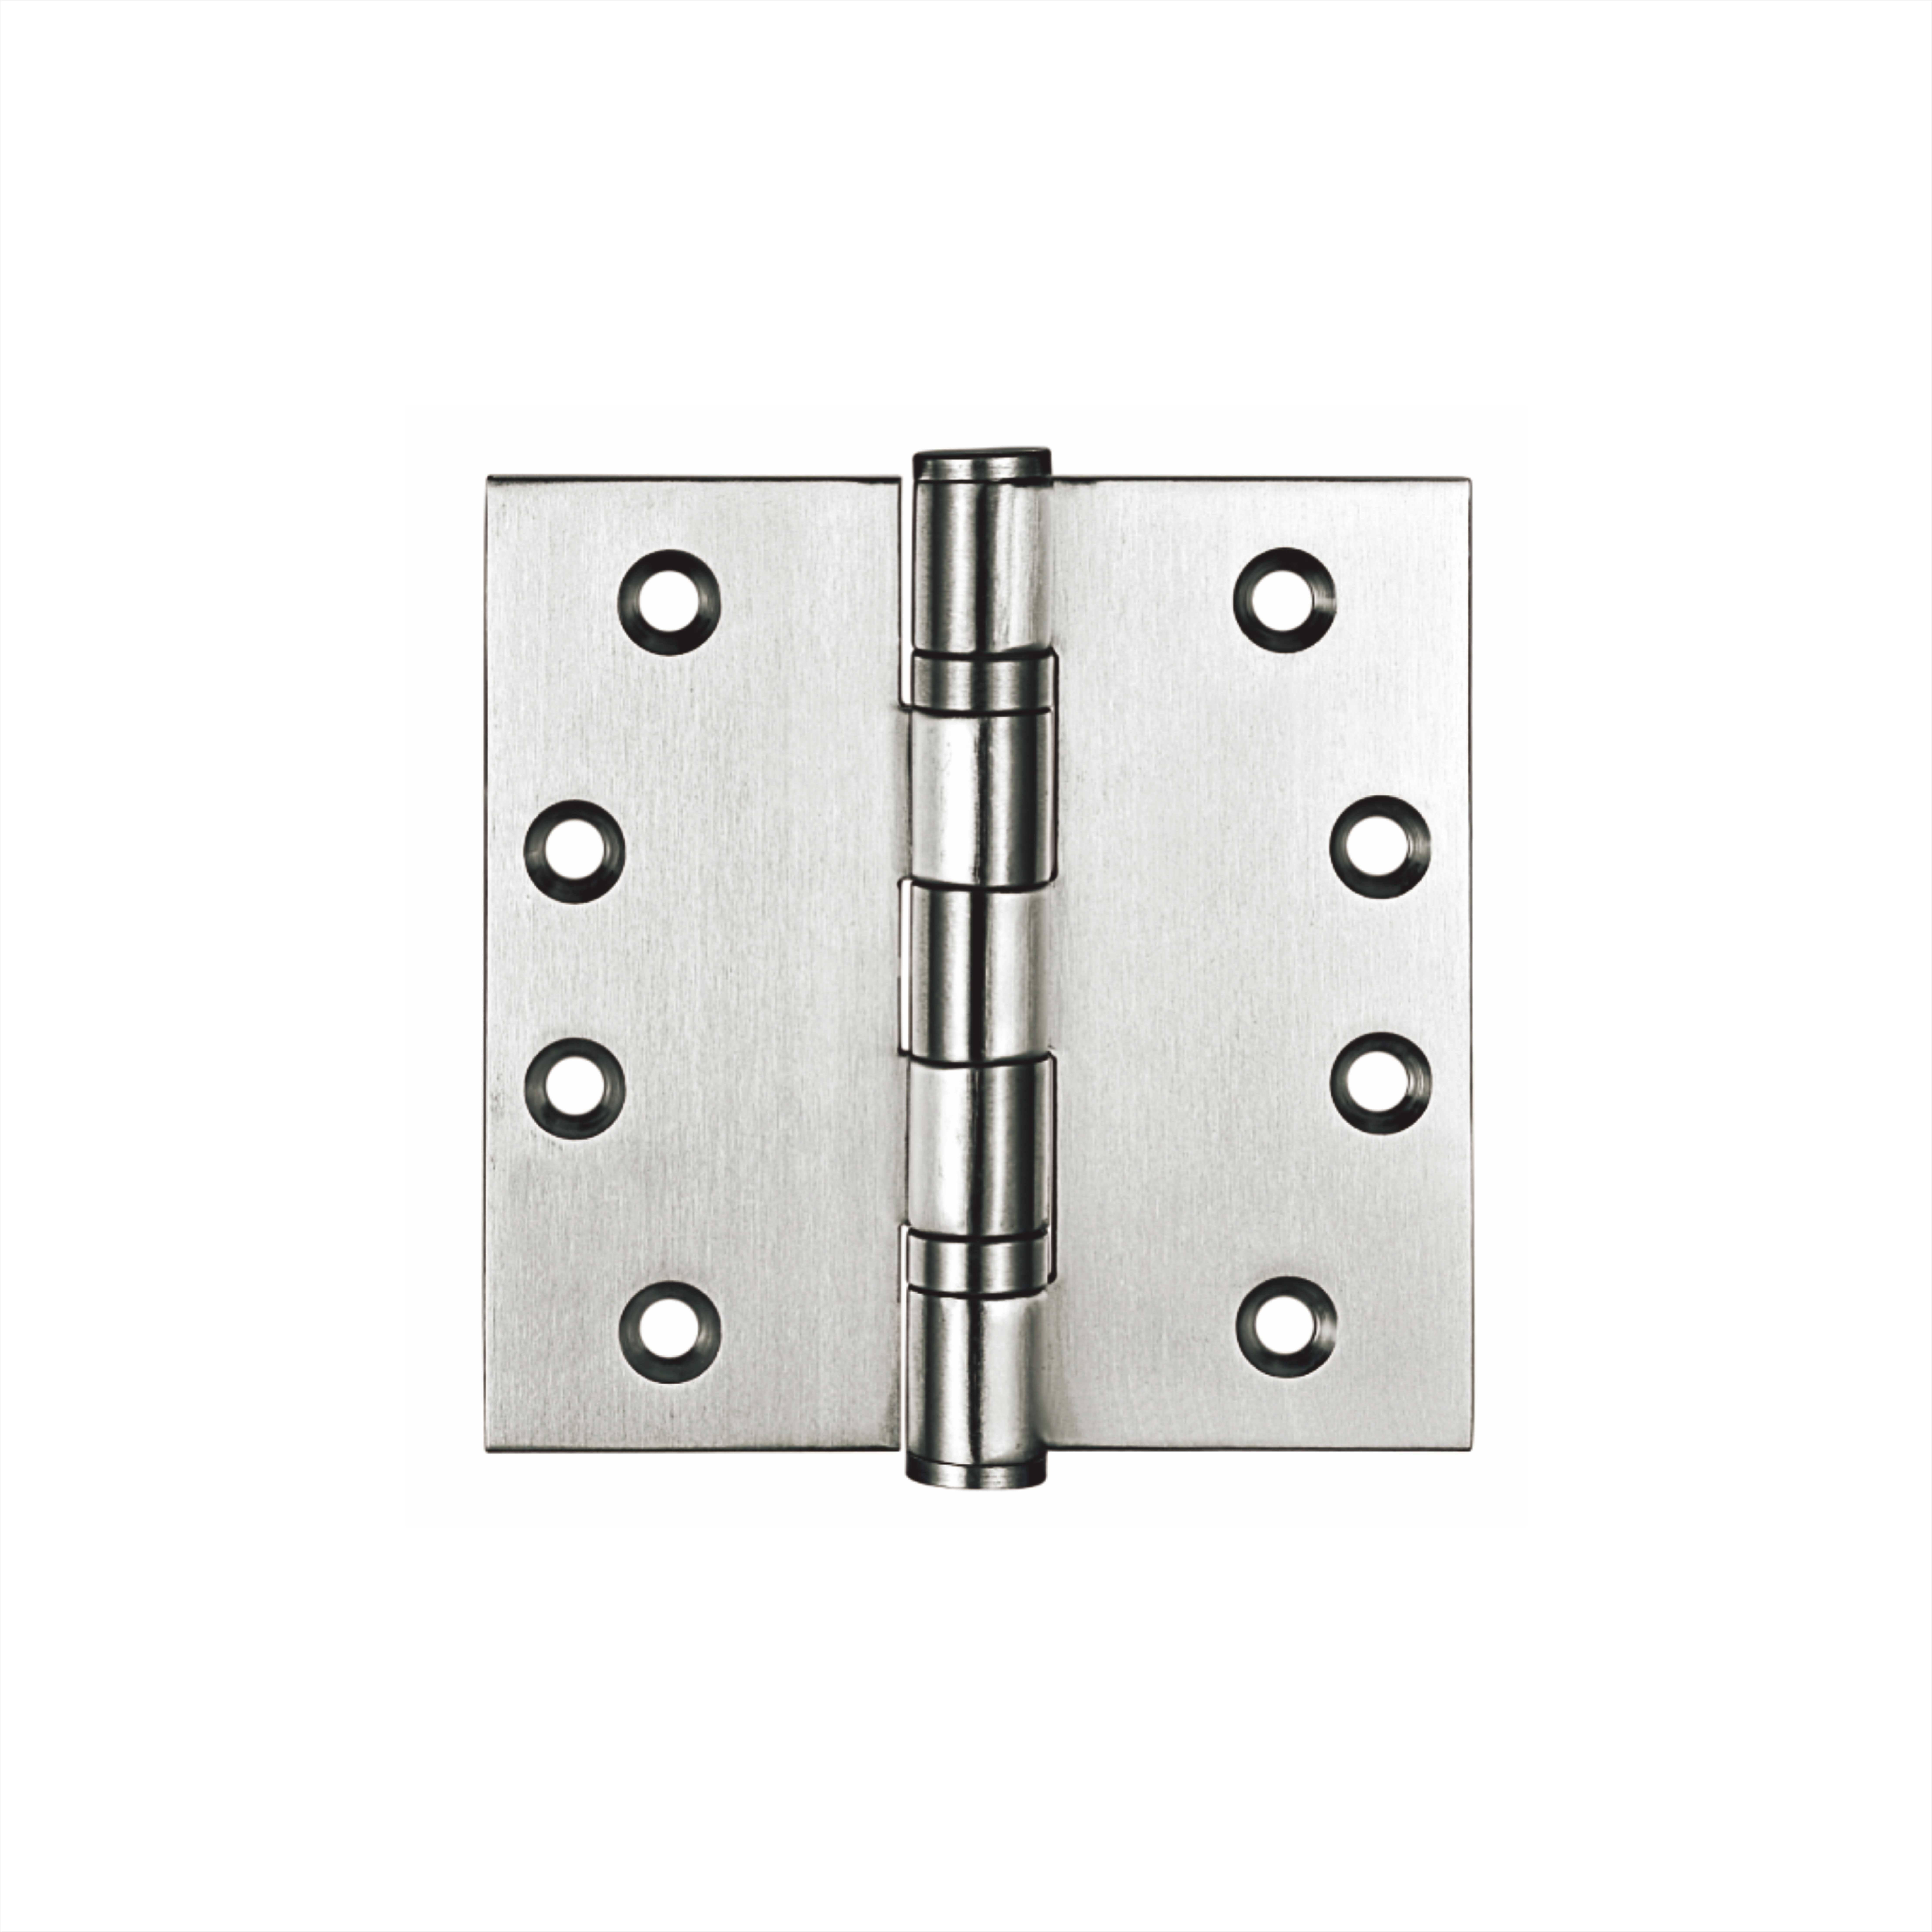 ANSI/BHMA A 156.1 GRADE 1 Architectural Door Butt Hinges